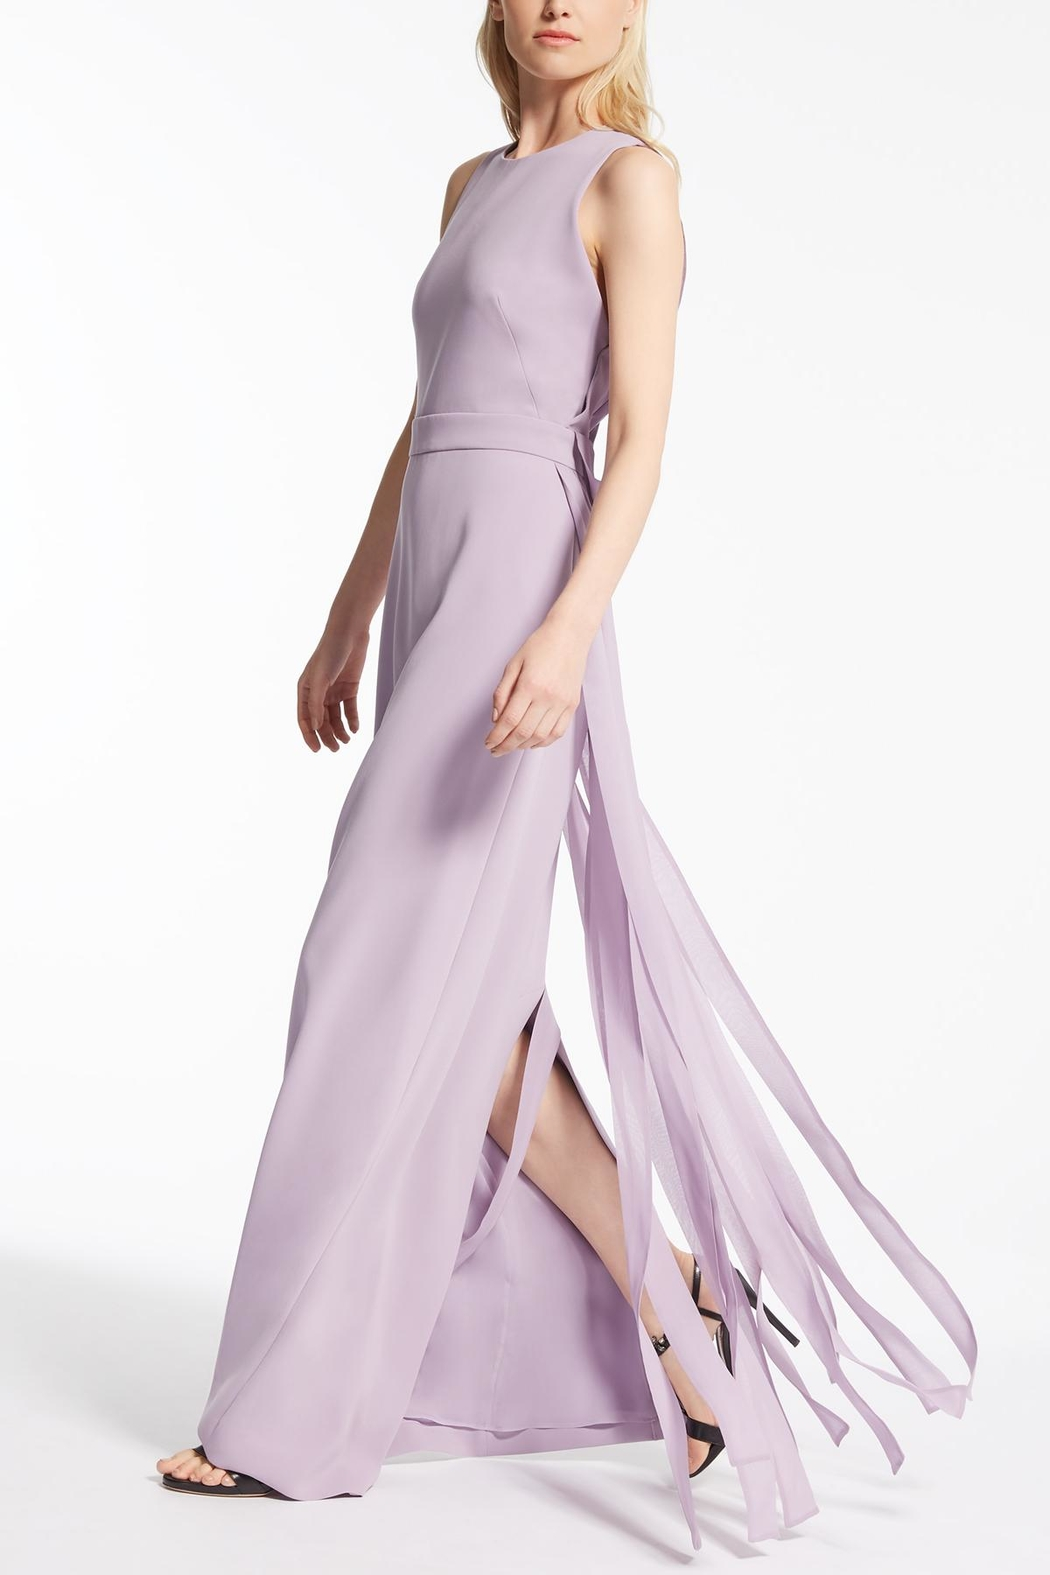 Max Mara Lilac Long Dress - Main Image